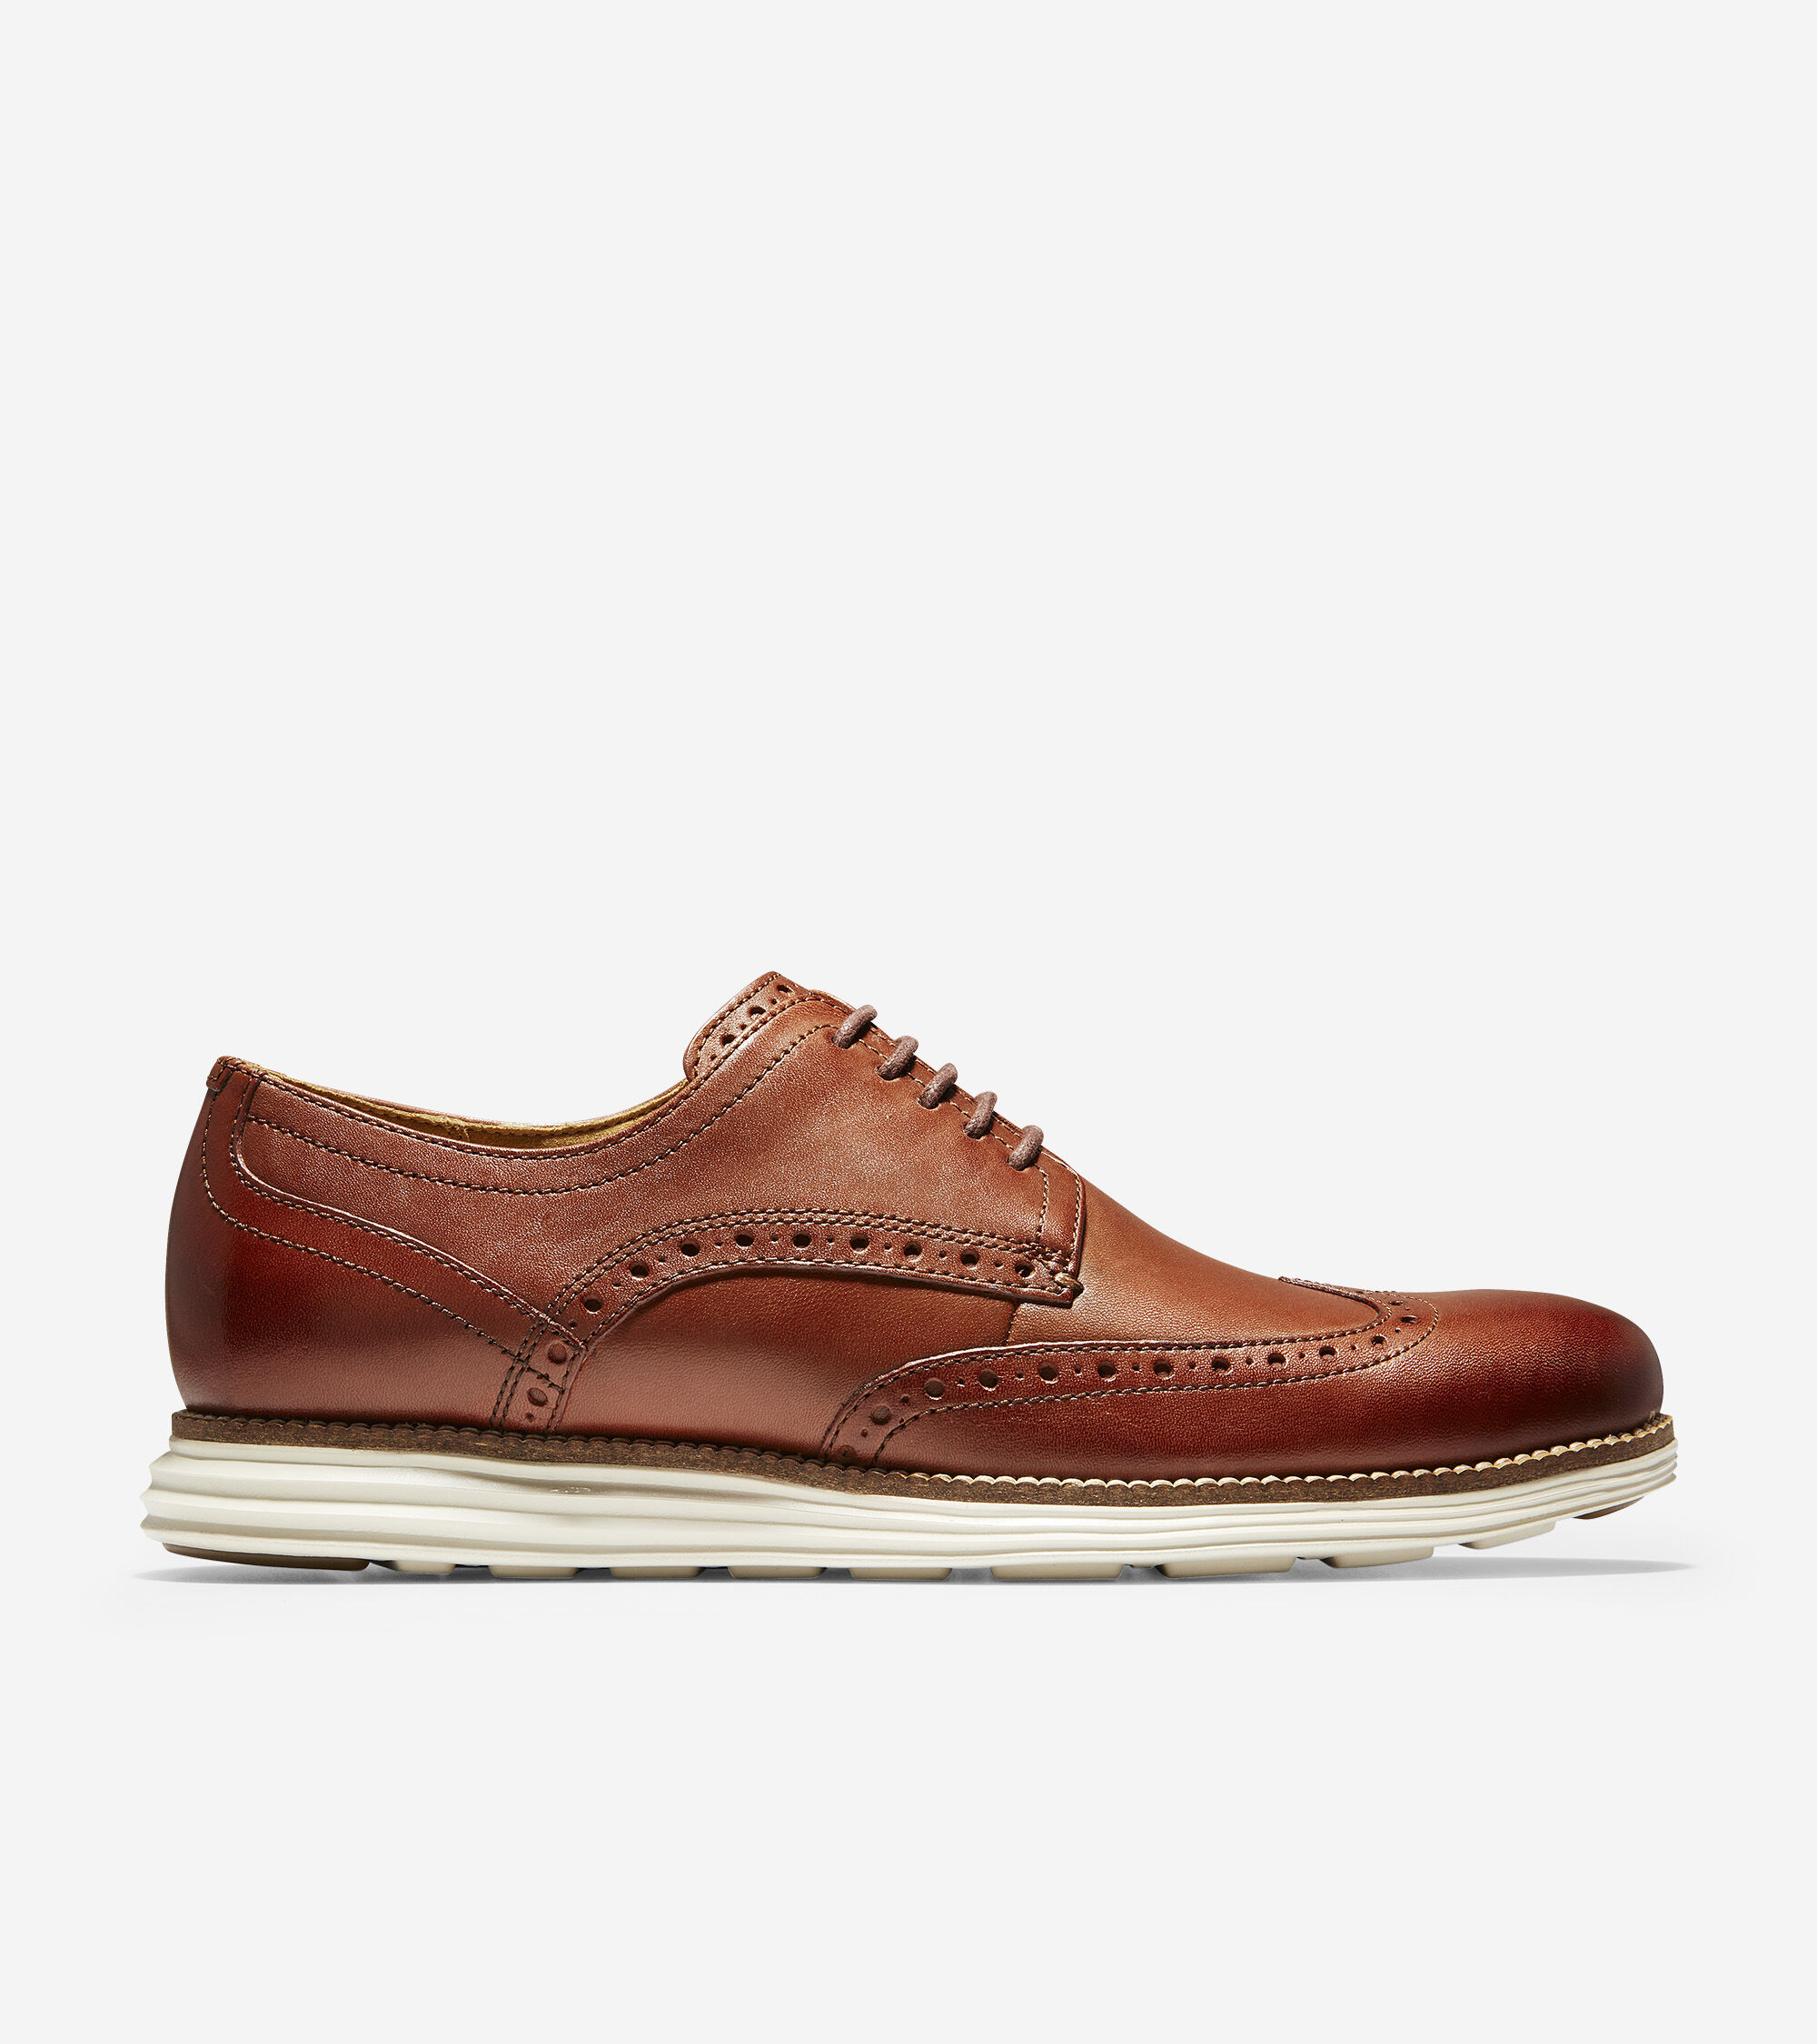 best service f74a7 e0b92 Men s OriginalGrand Wingtip Oxfords in Woodbury-Ivory   Cole Haan